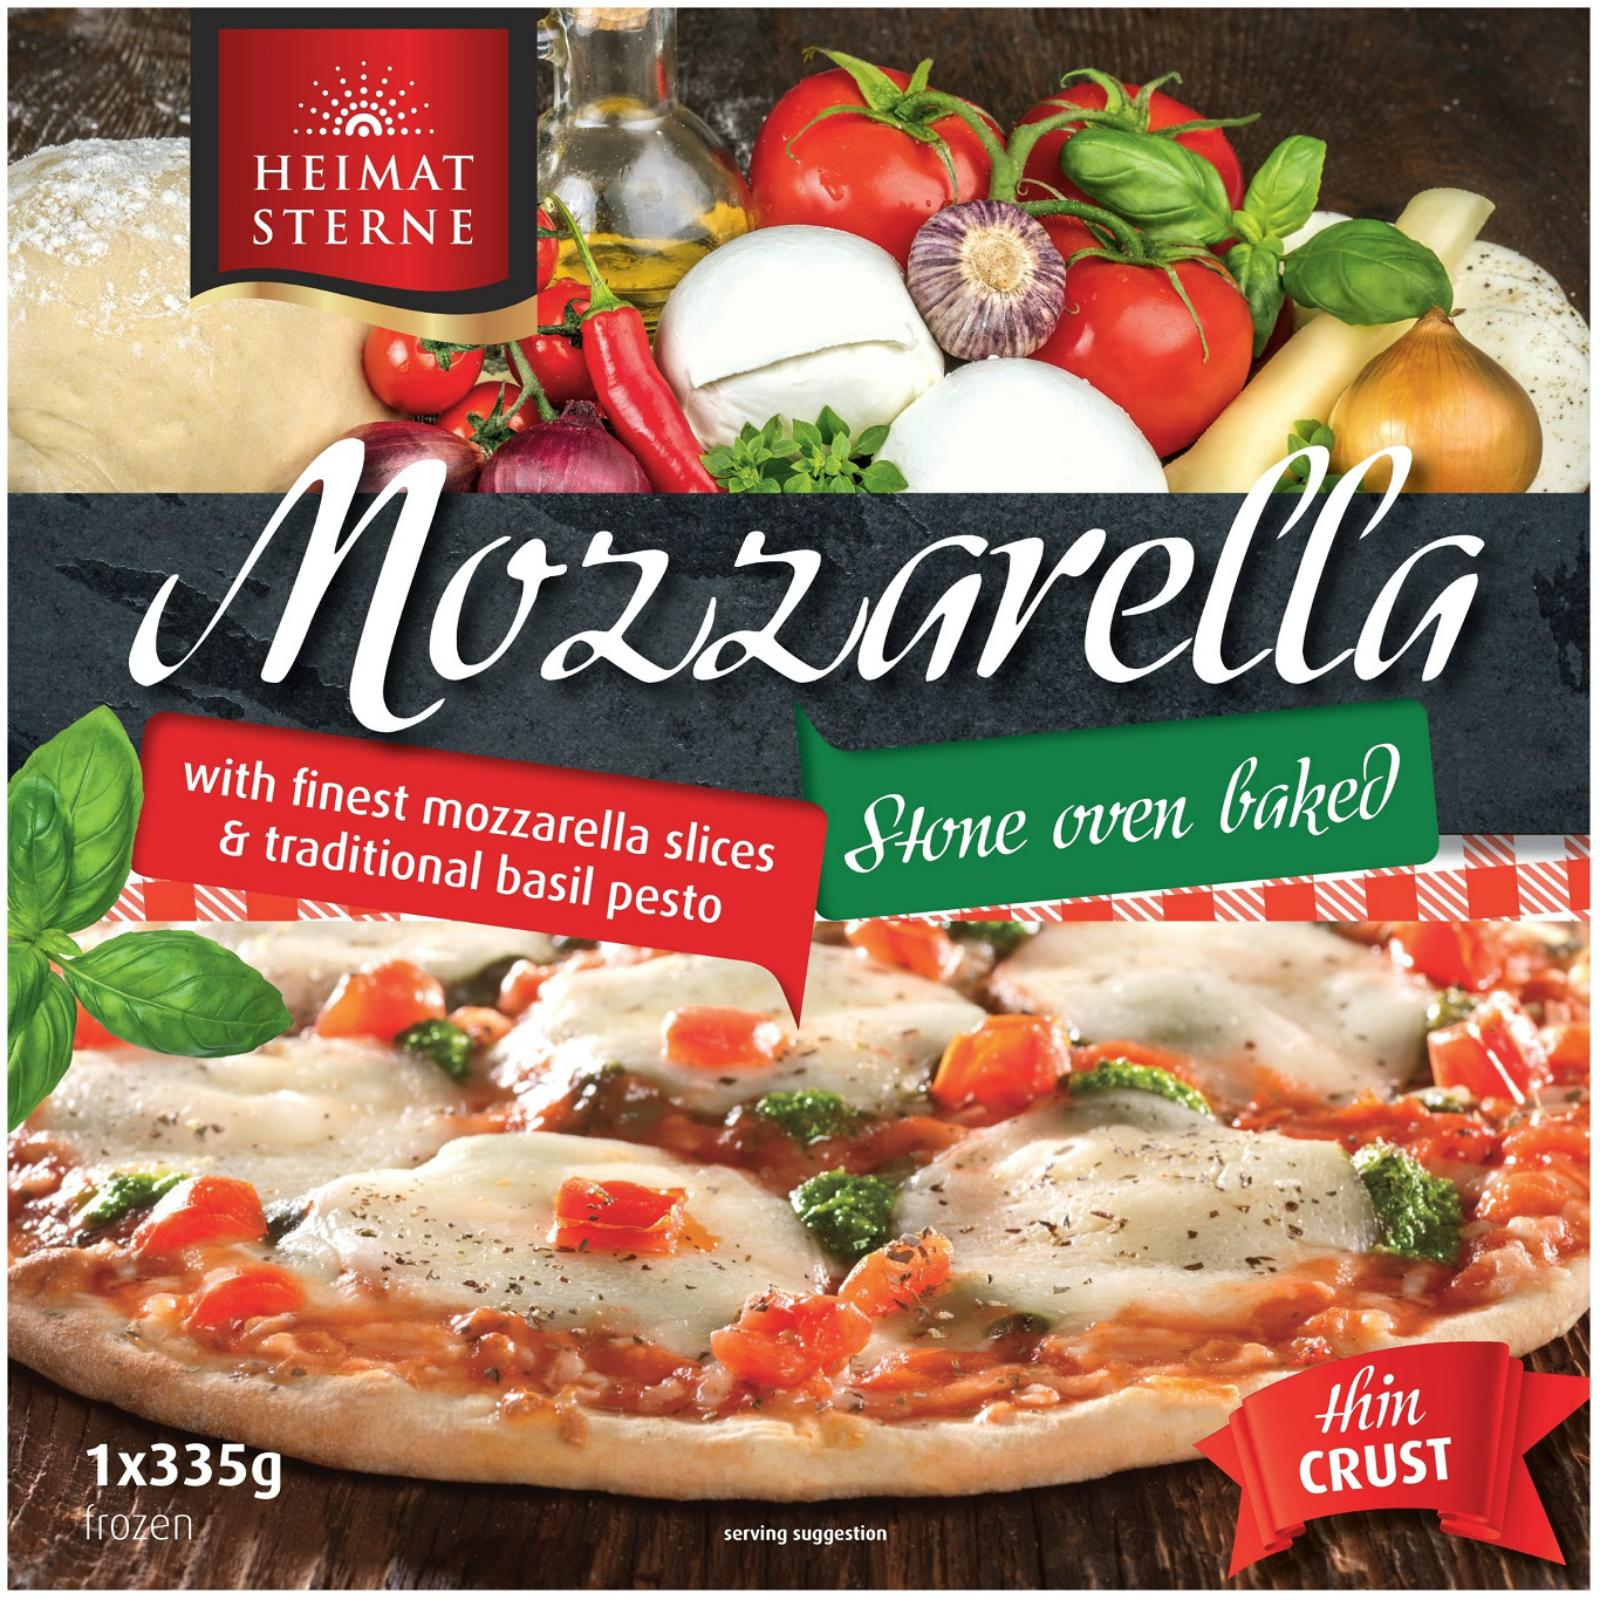 Heimatsterne Mozzarella Thin Crust Pizza - Frozen By Redmart.